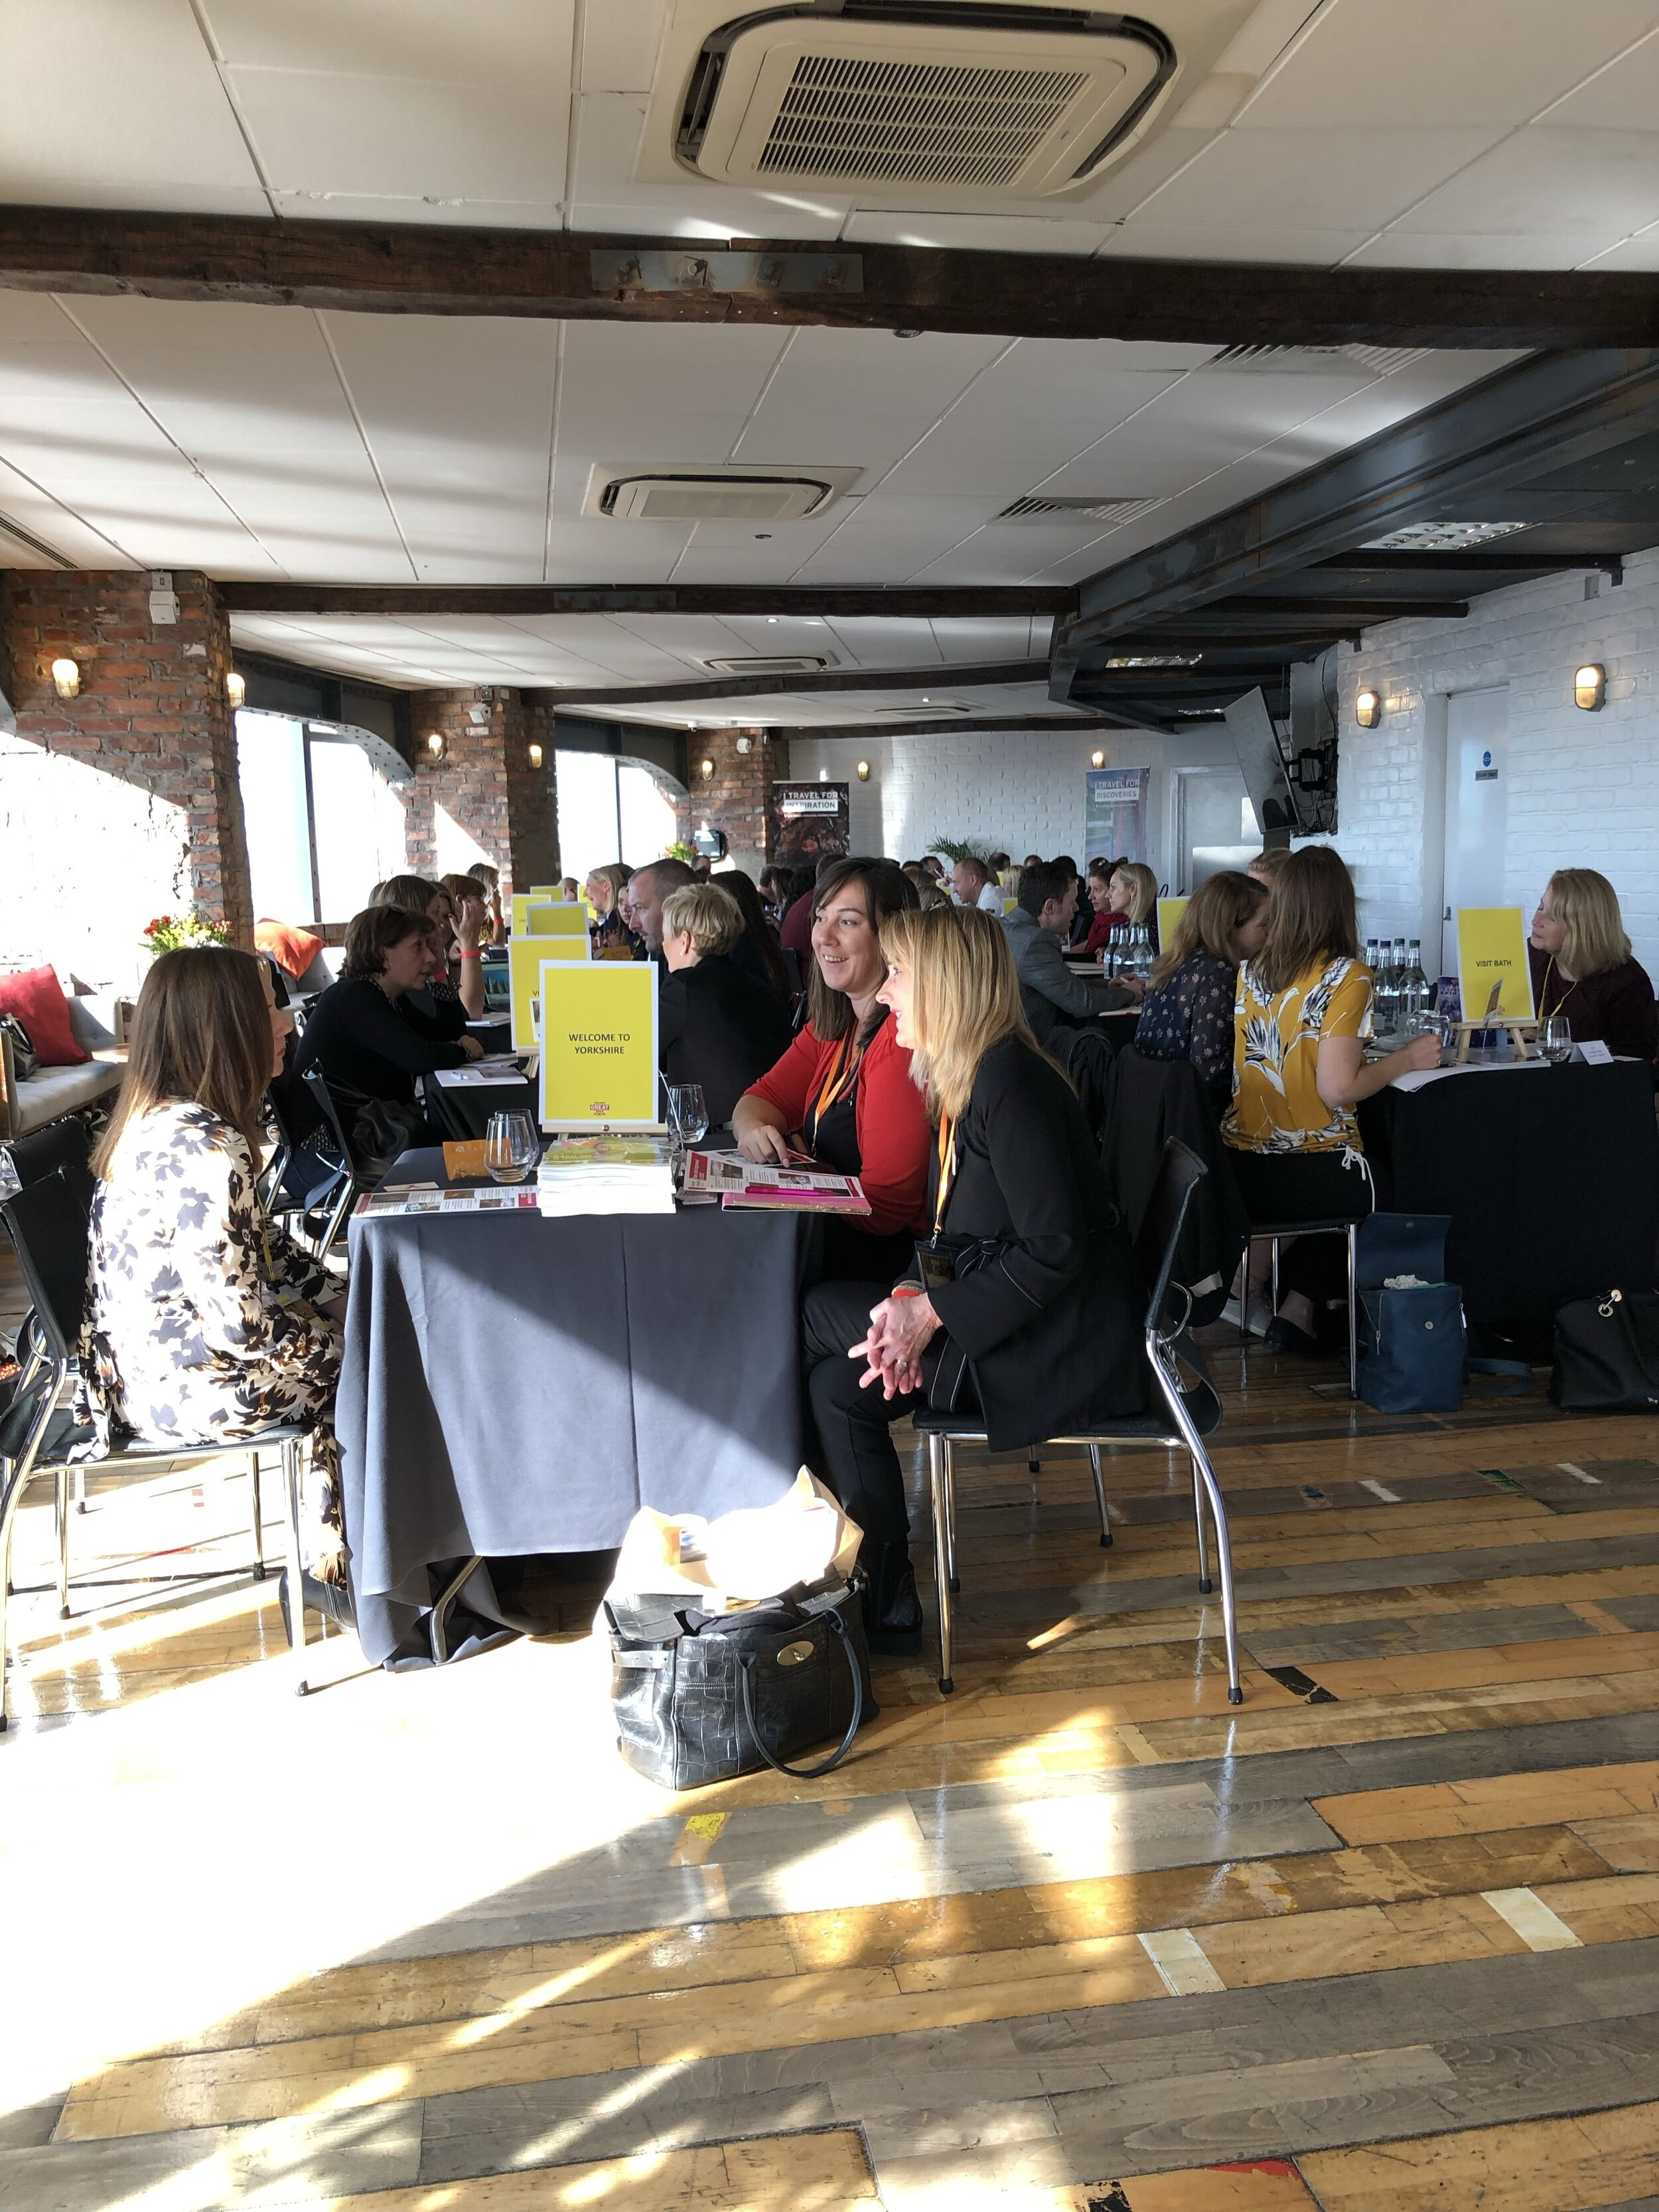 Speed-dating! An intense but efficient way to create contacts